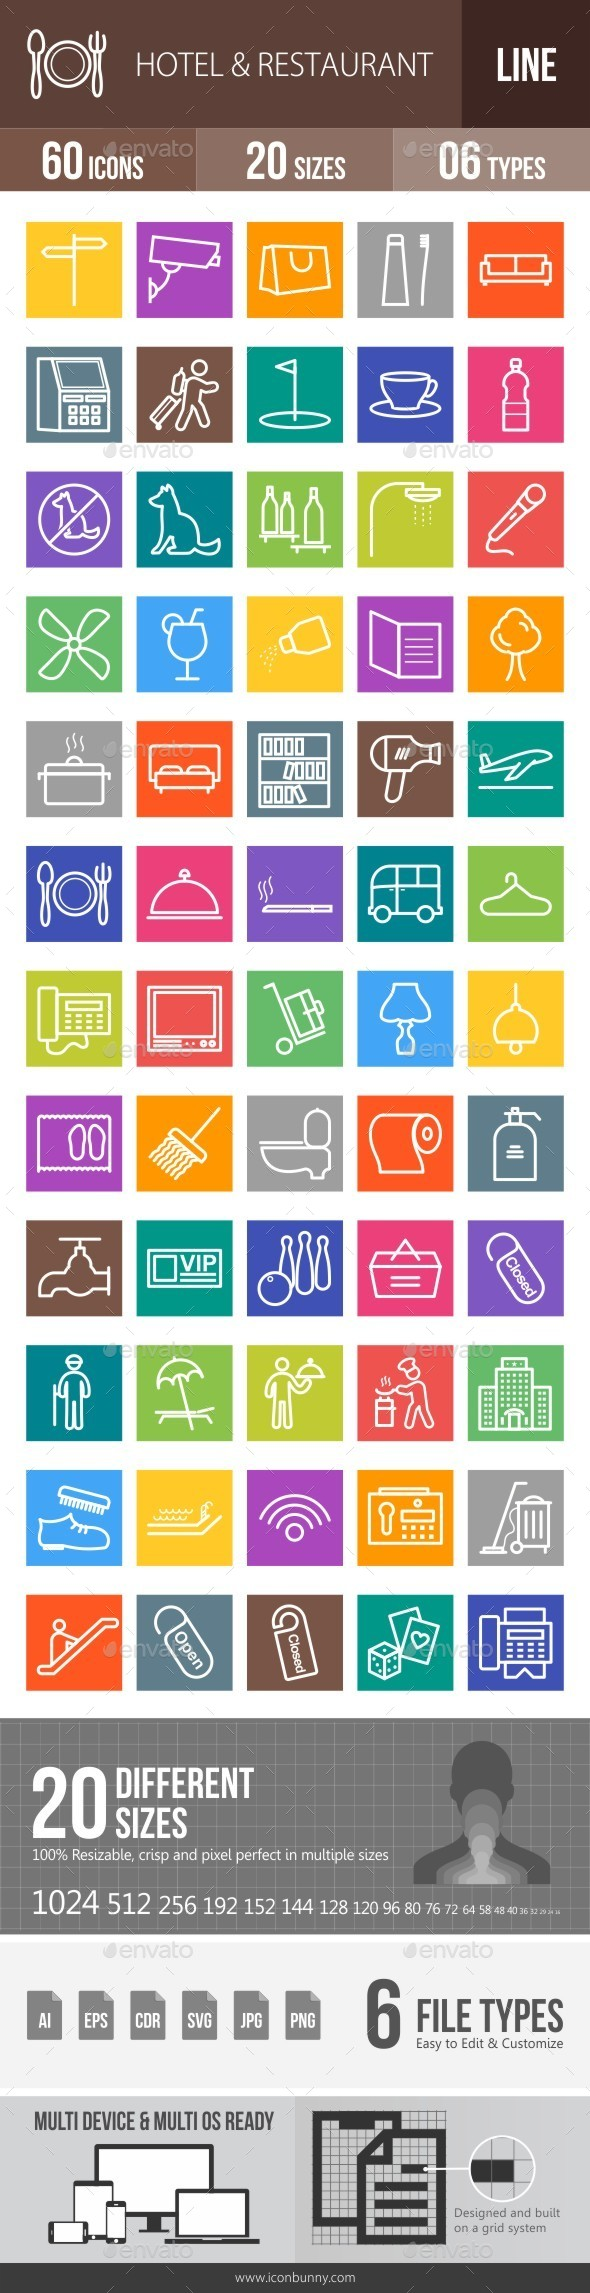 Hotel & Restaurant Line Multicolor Icons - Icons